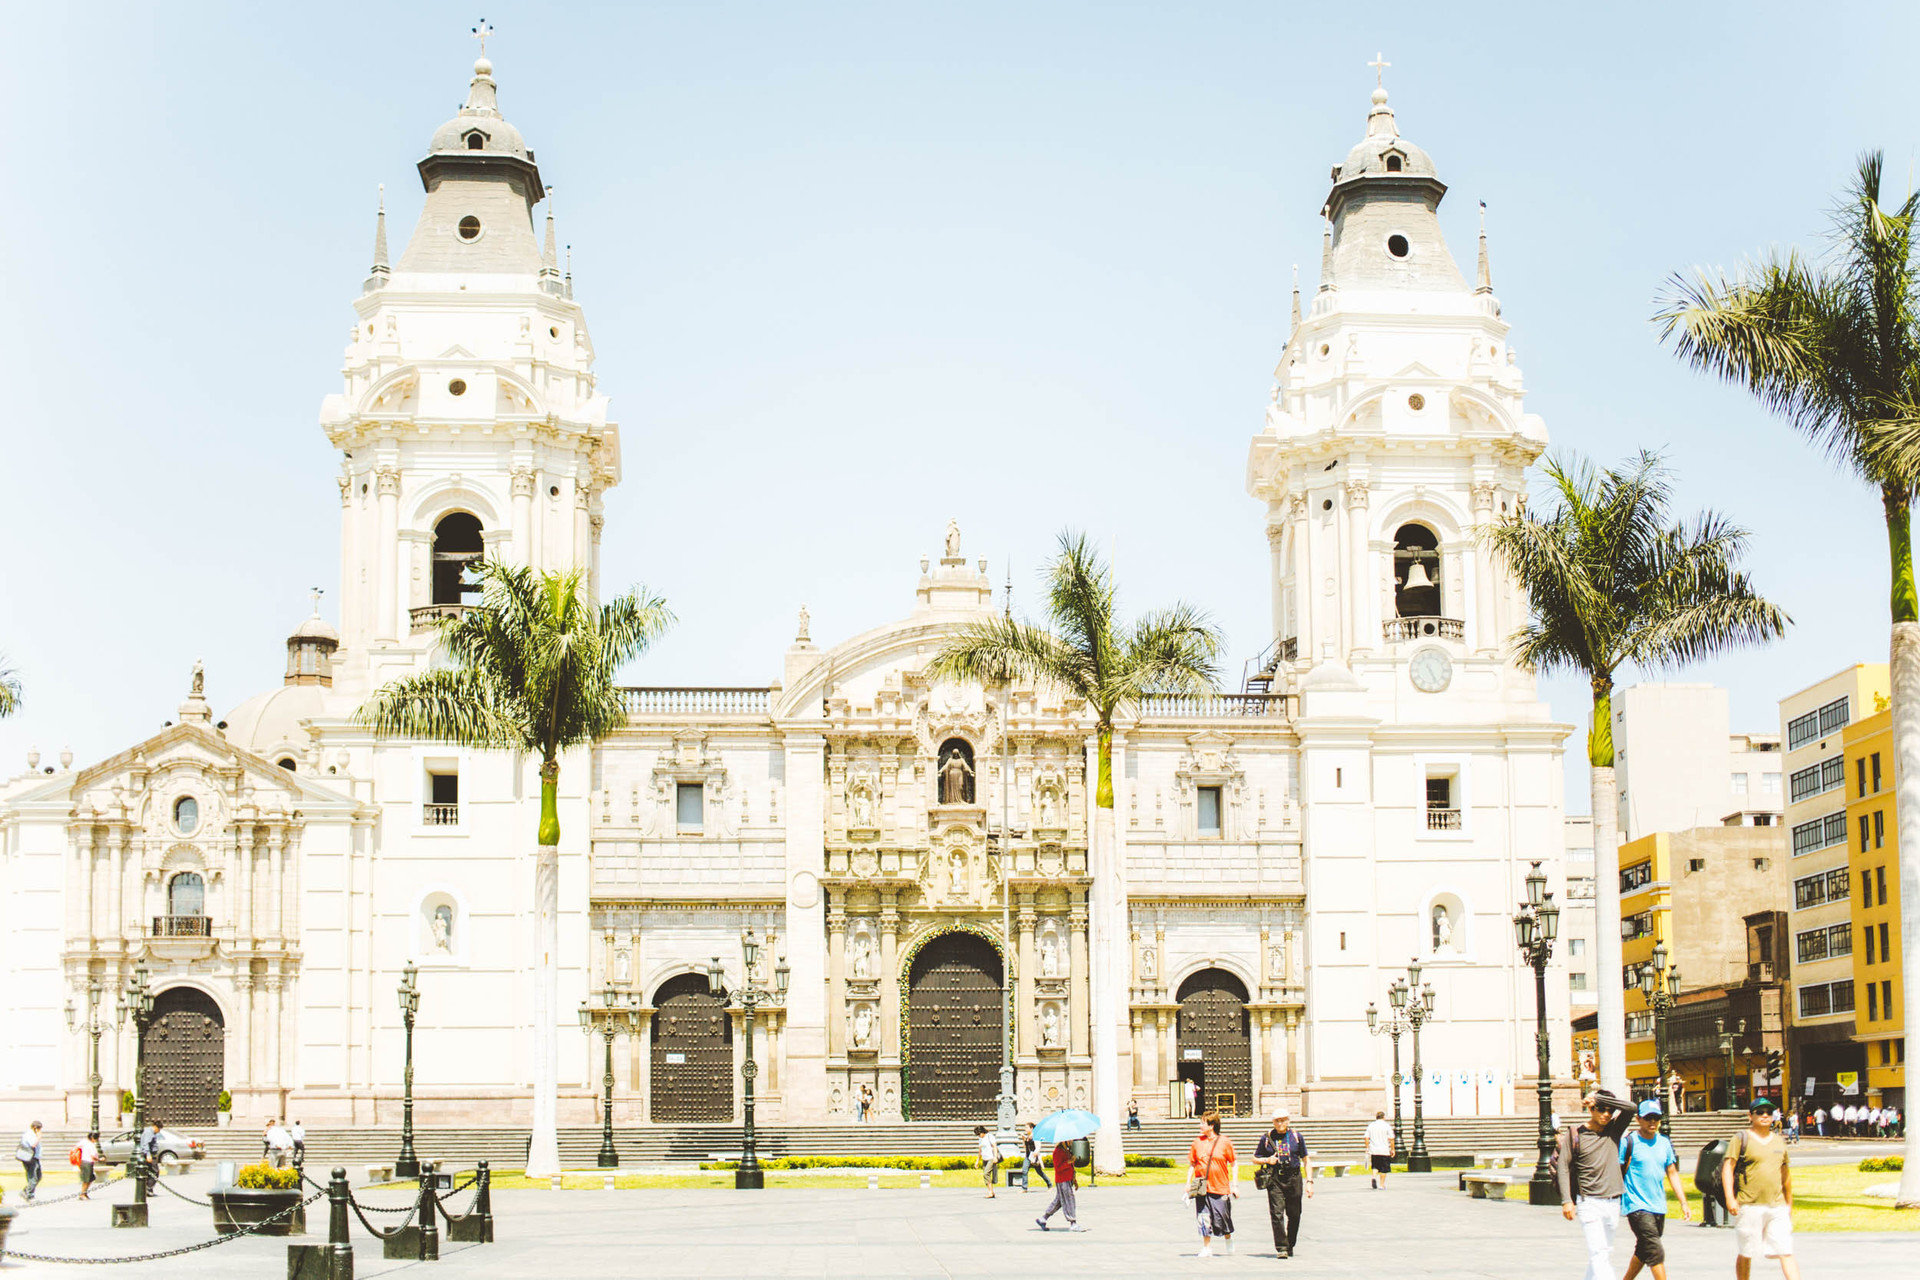 airy Architecture building Elegant Historic Luxury palm trees regal sophisticated south america Trip Ideas Tropical outdoor plaza bastion landmark historic site Town town square place of worship Church tower cathedral basilica palace facade